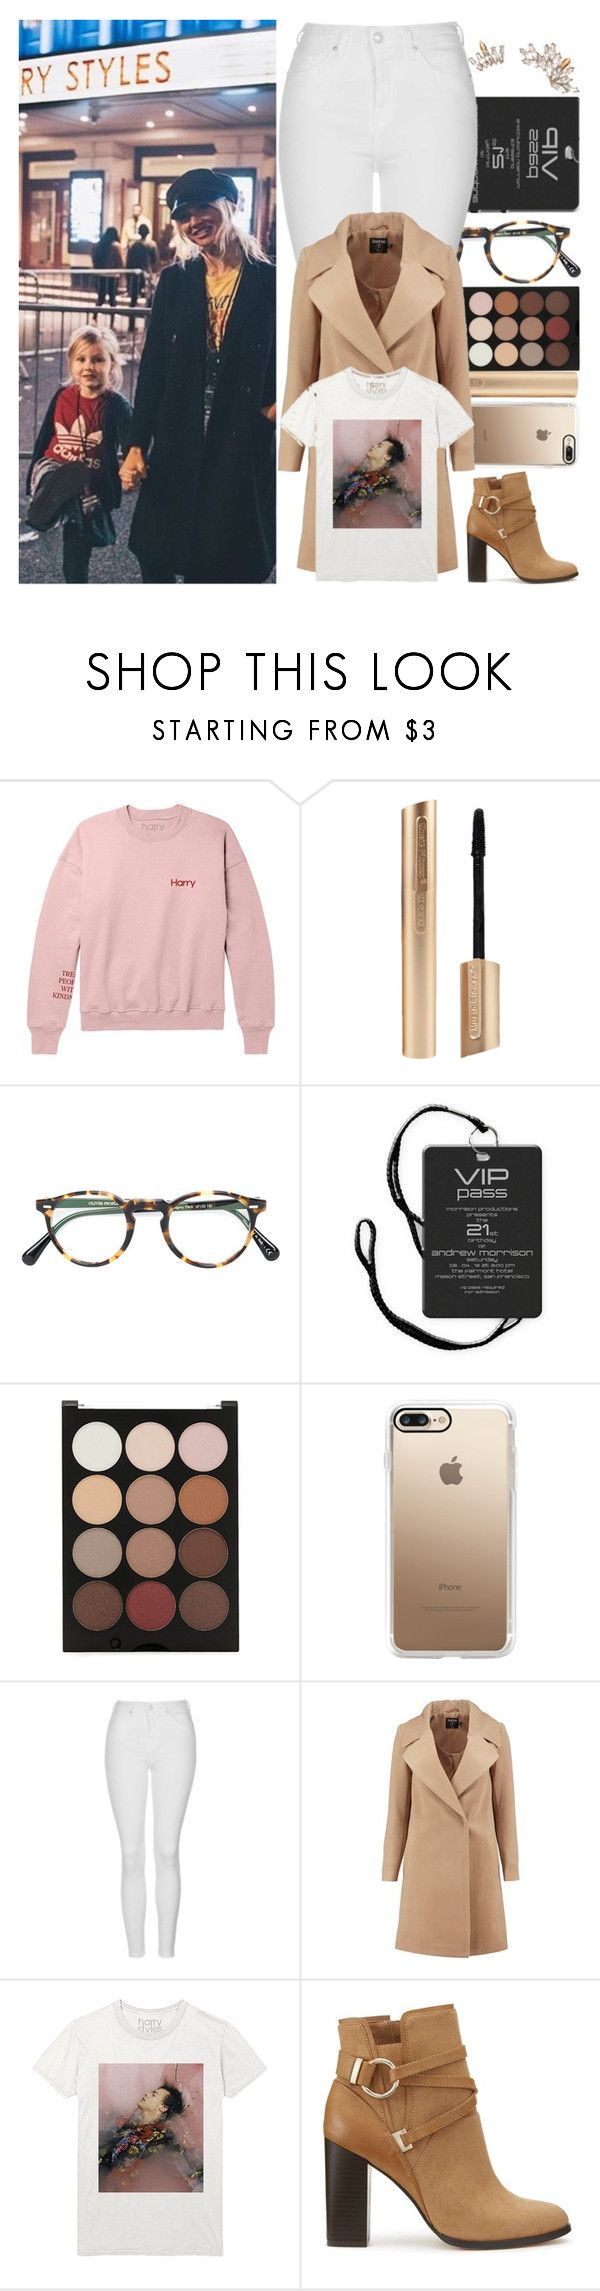 """With Lou Teasdale And Lux"" by angelbrubisc ❤ liked on Polyvore featuring Oliver Peoples, Forever 21, Casetify, Topshop, Boohoo, Miss Selfridge and Hermès"